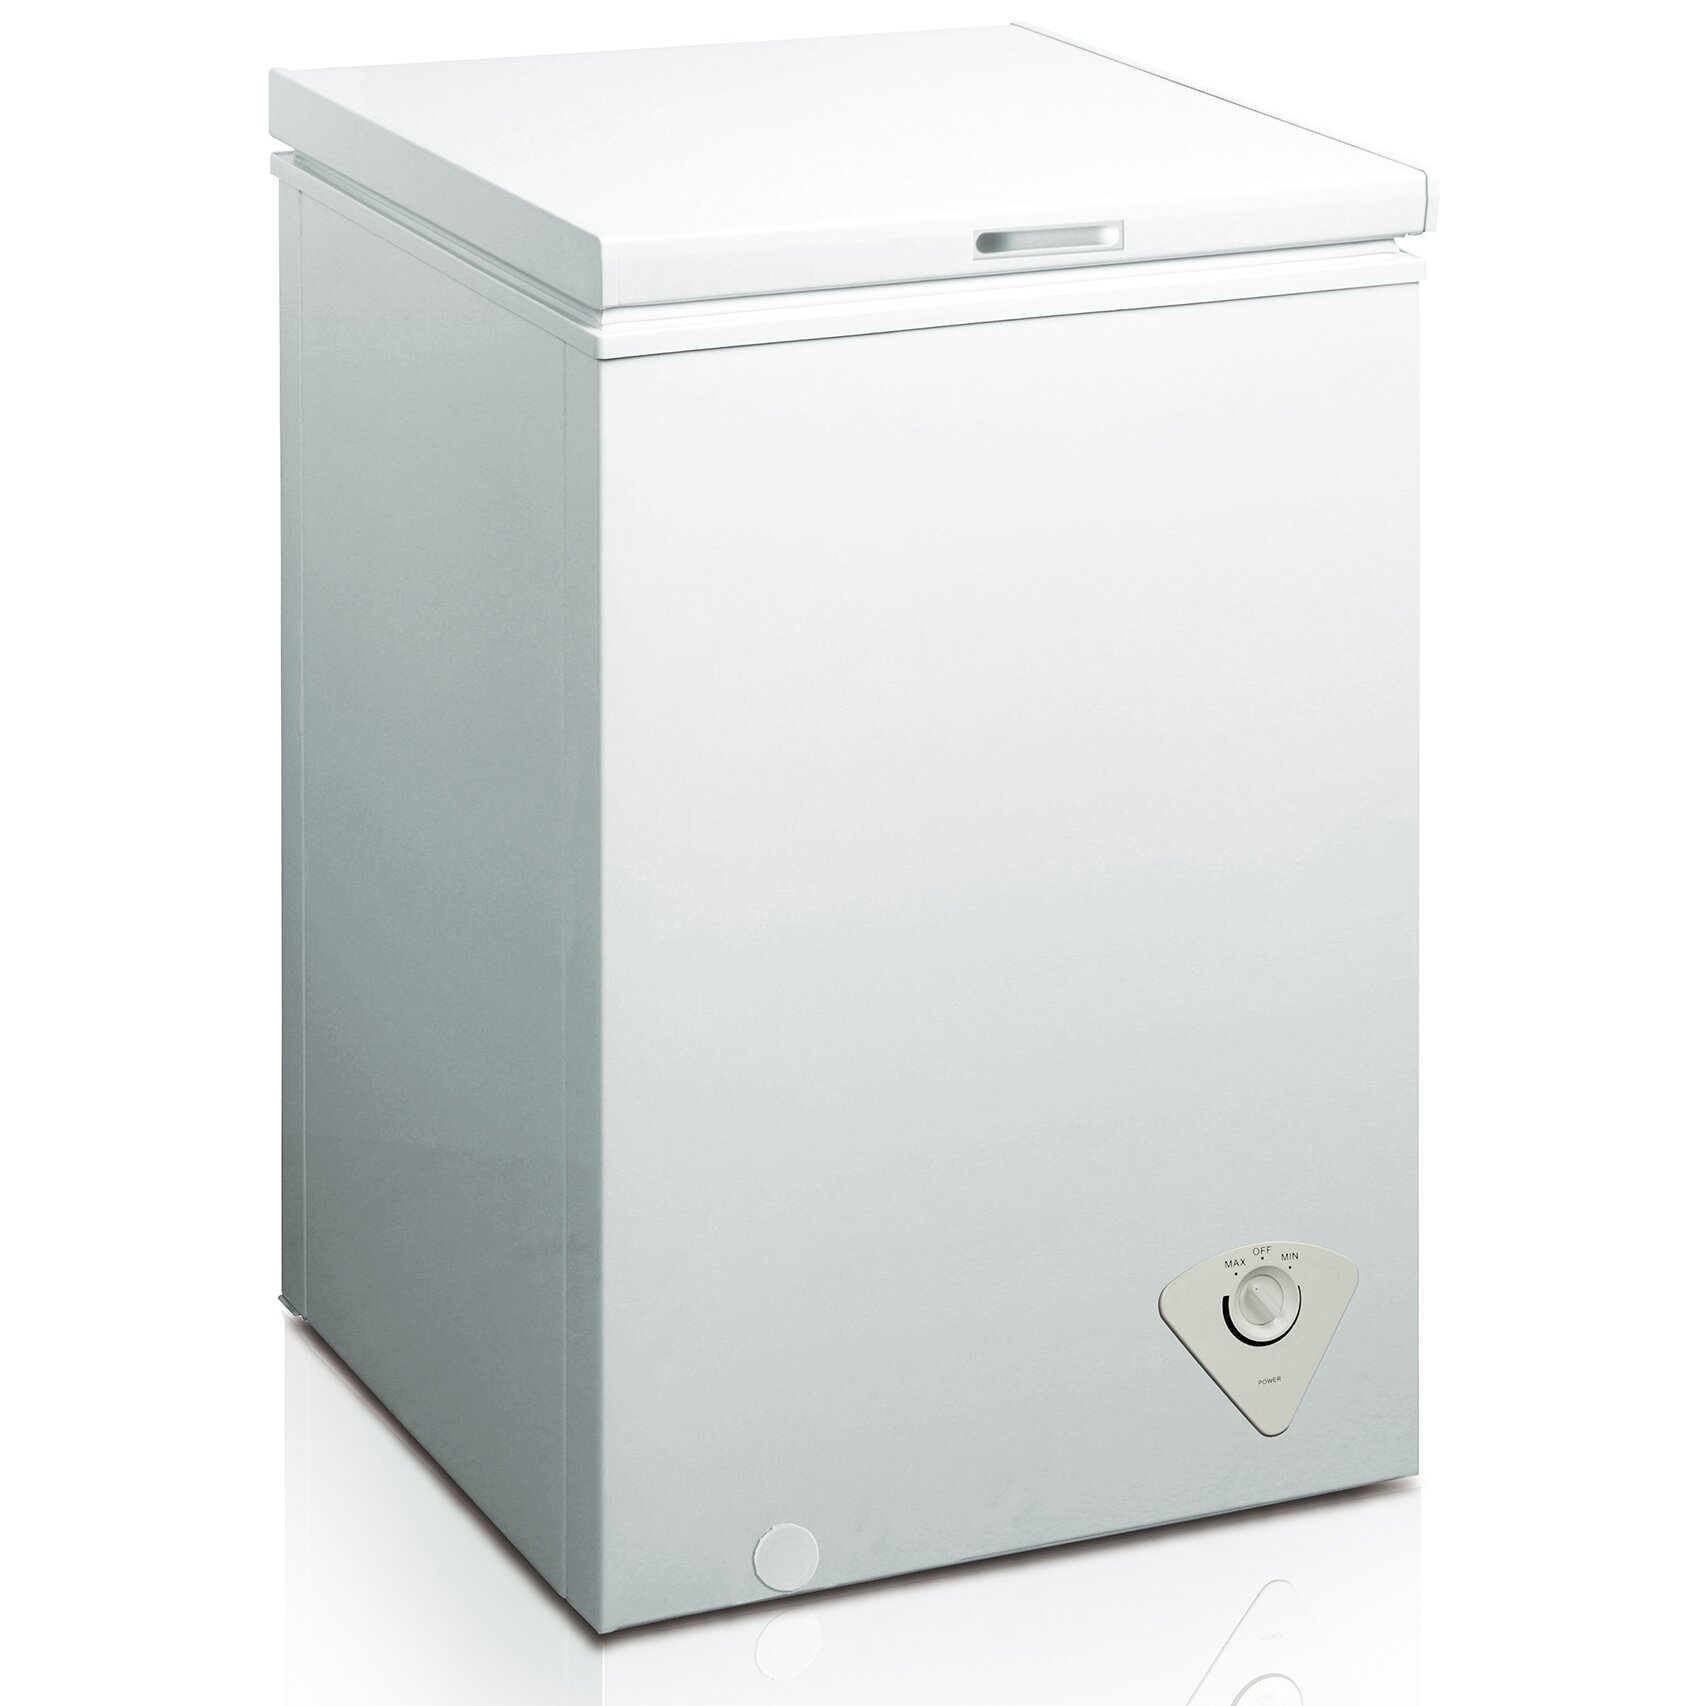 Arctic King 3 5 Cu Ft Freezer Amp Reviews Wayfair